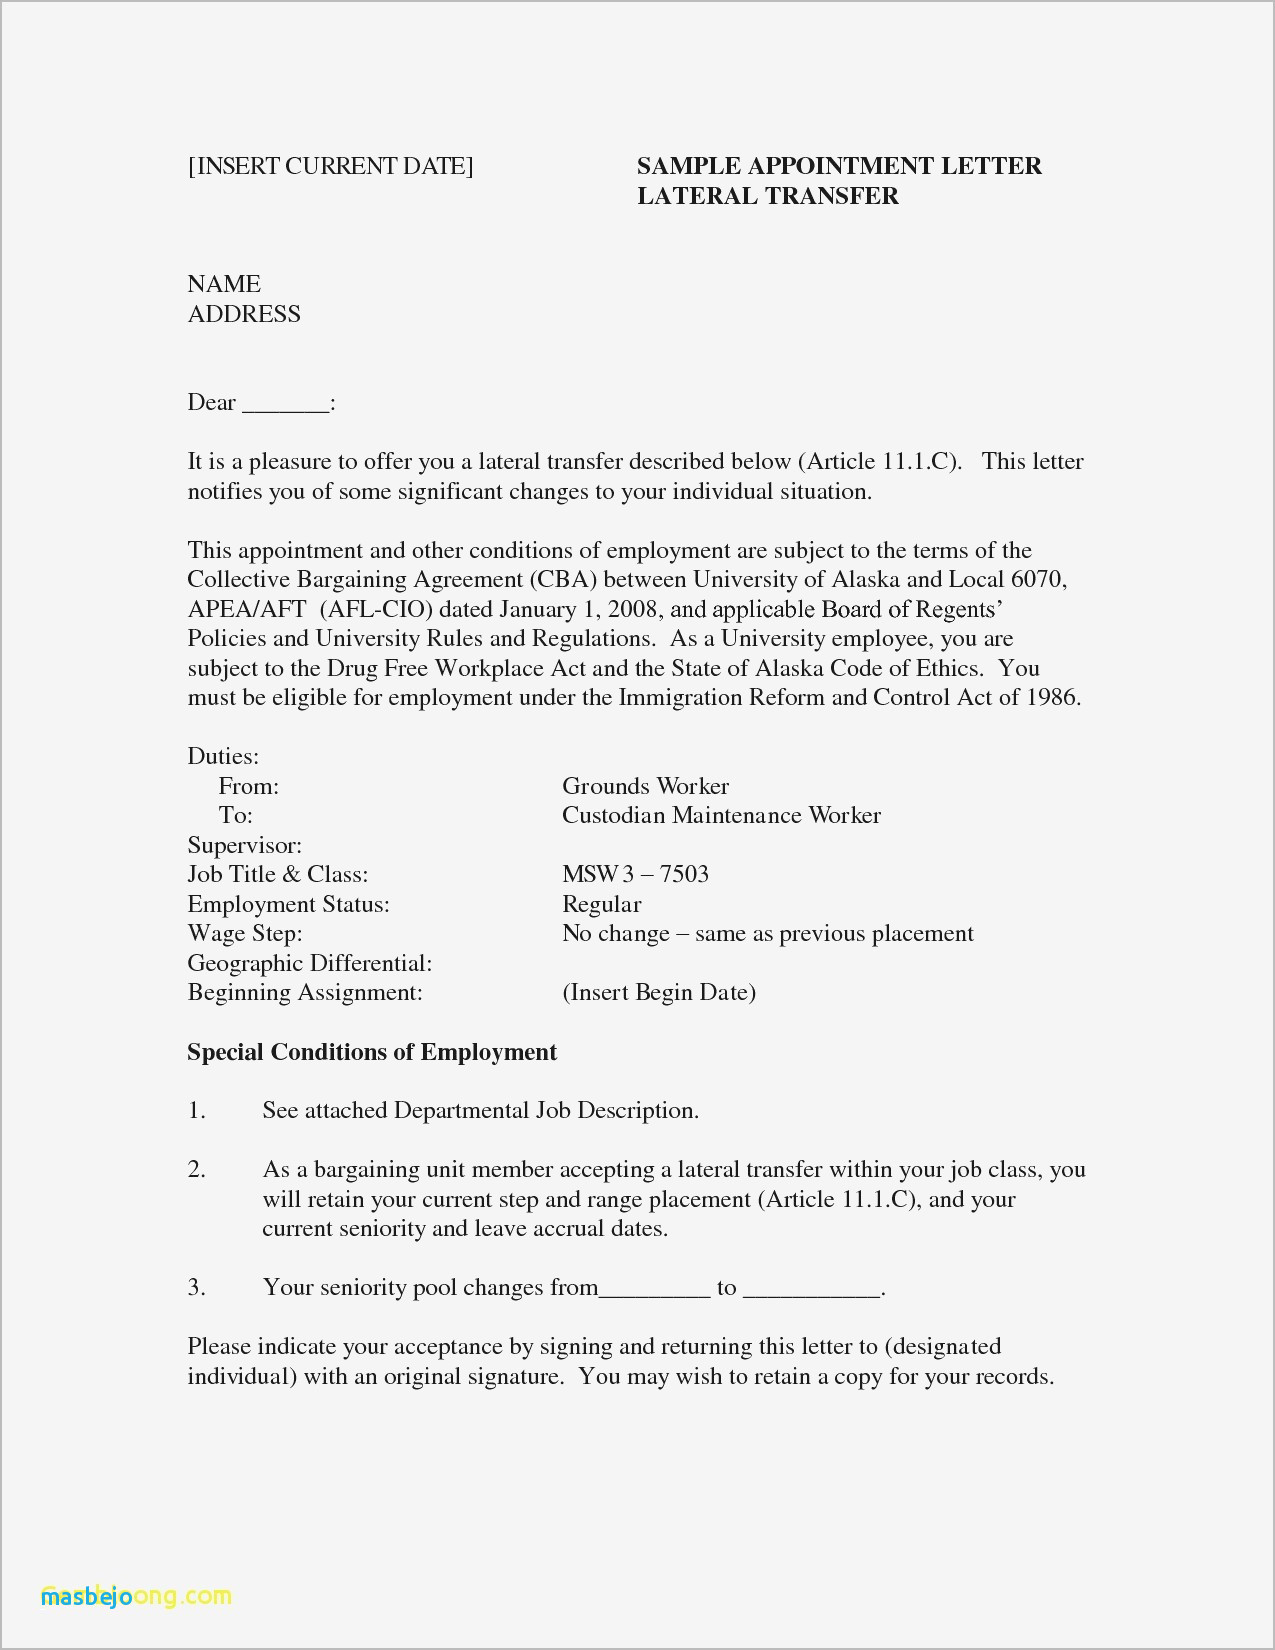 Musical theatre Resume - Musical theatre Resume Examples Resume Templates Musical theatre